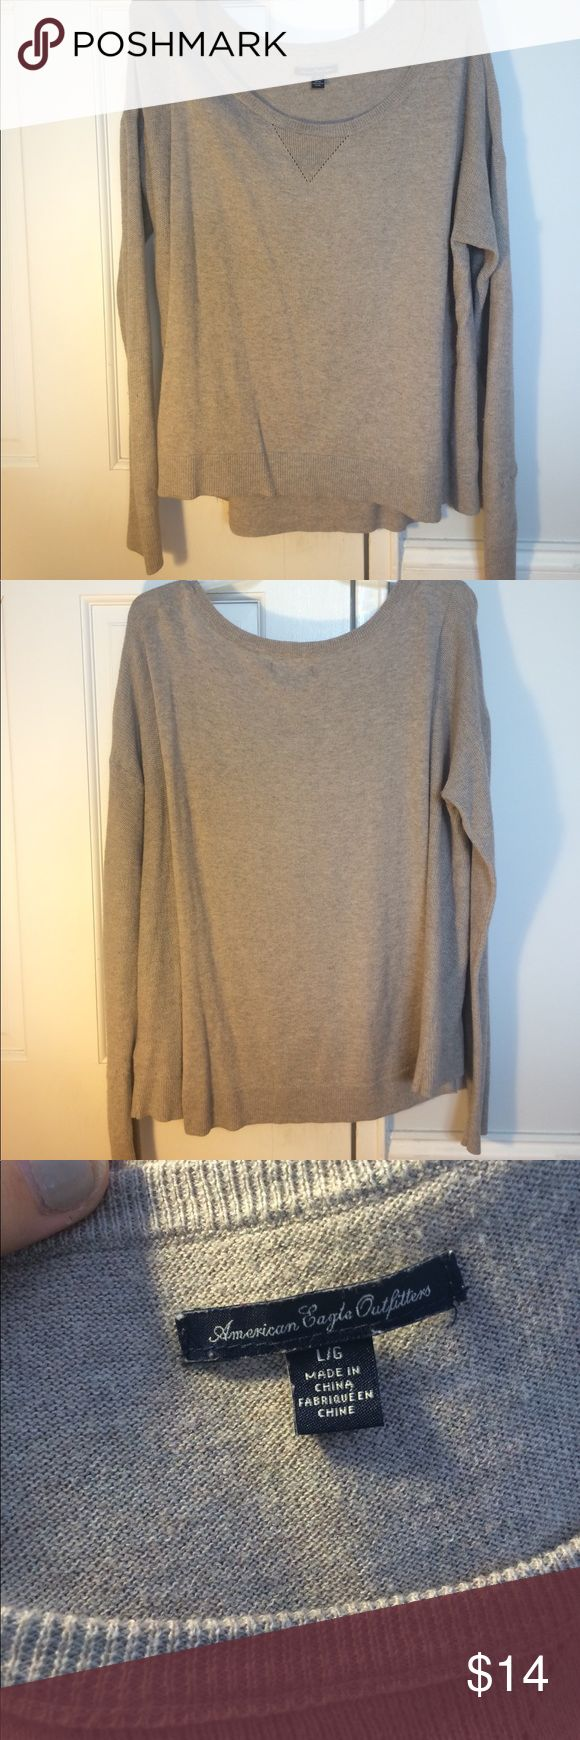 LARGE American eagle sweater!! This tan sweater is perfect for the fall!! It is a lighter material, long sleeved with intricate thinner material on the sleeves!! It is a little longer in the back- perfect to wear with leggings! However it has a minor thread stitching problem on the inside on the right arm- not very noticeable when worn! American Eagle Outfitters Tops Tees - Long Sleeve